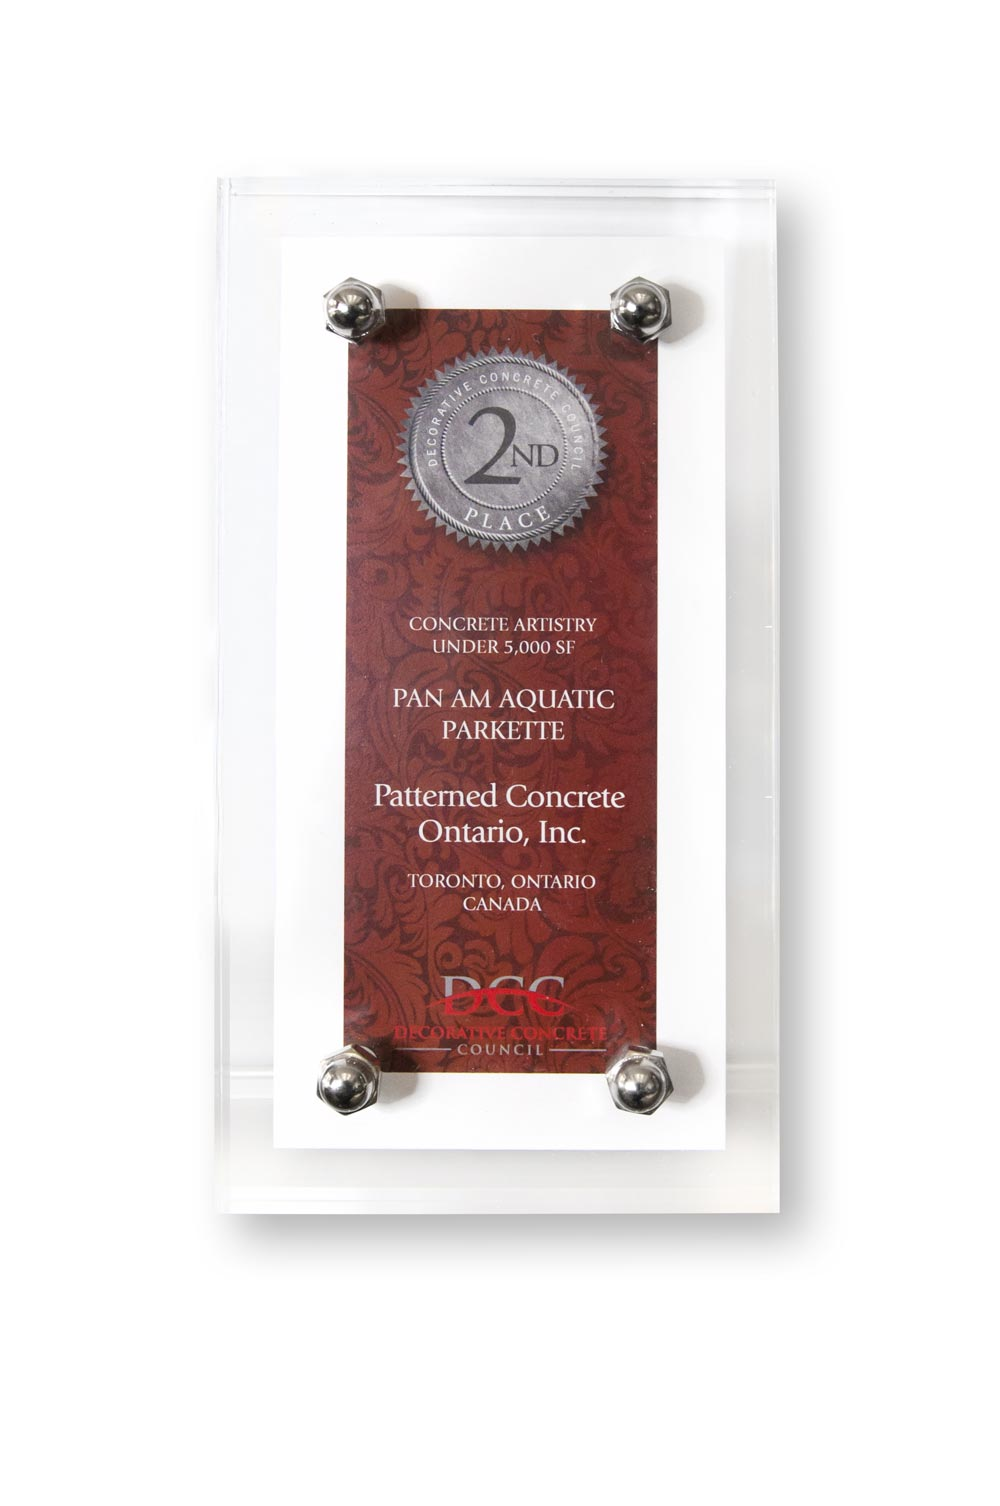 Our stamped concrete contracts are recognized as among the best